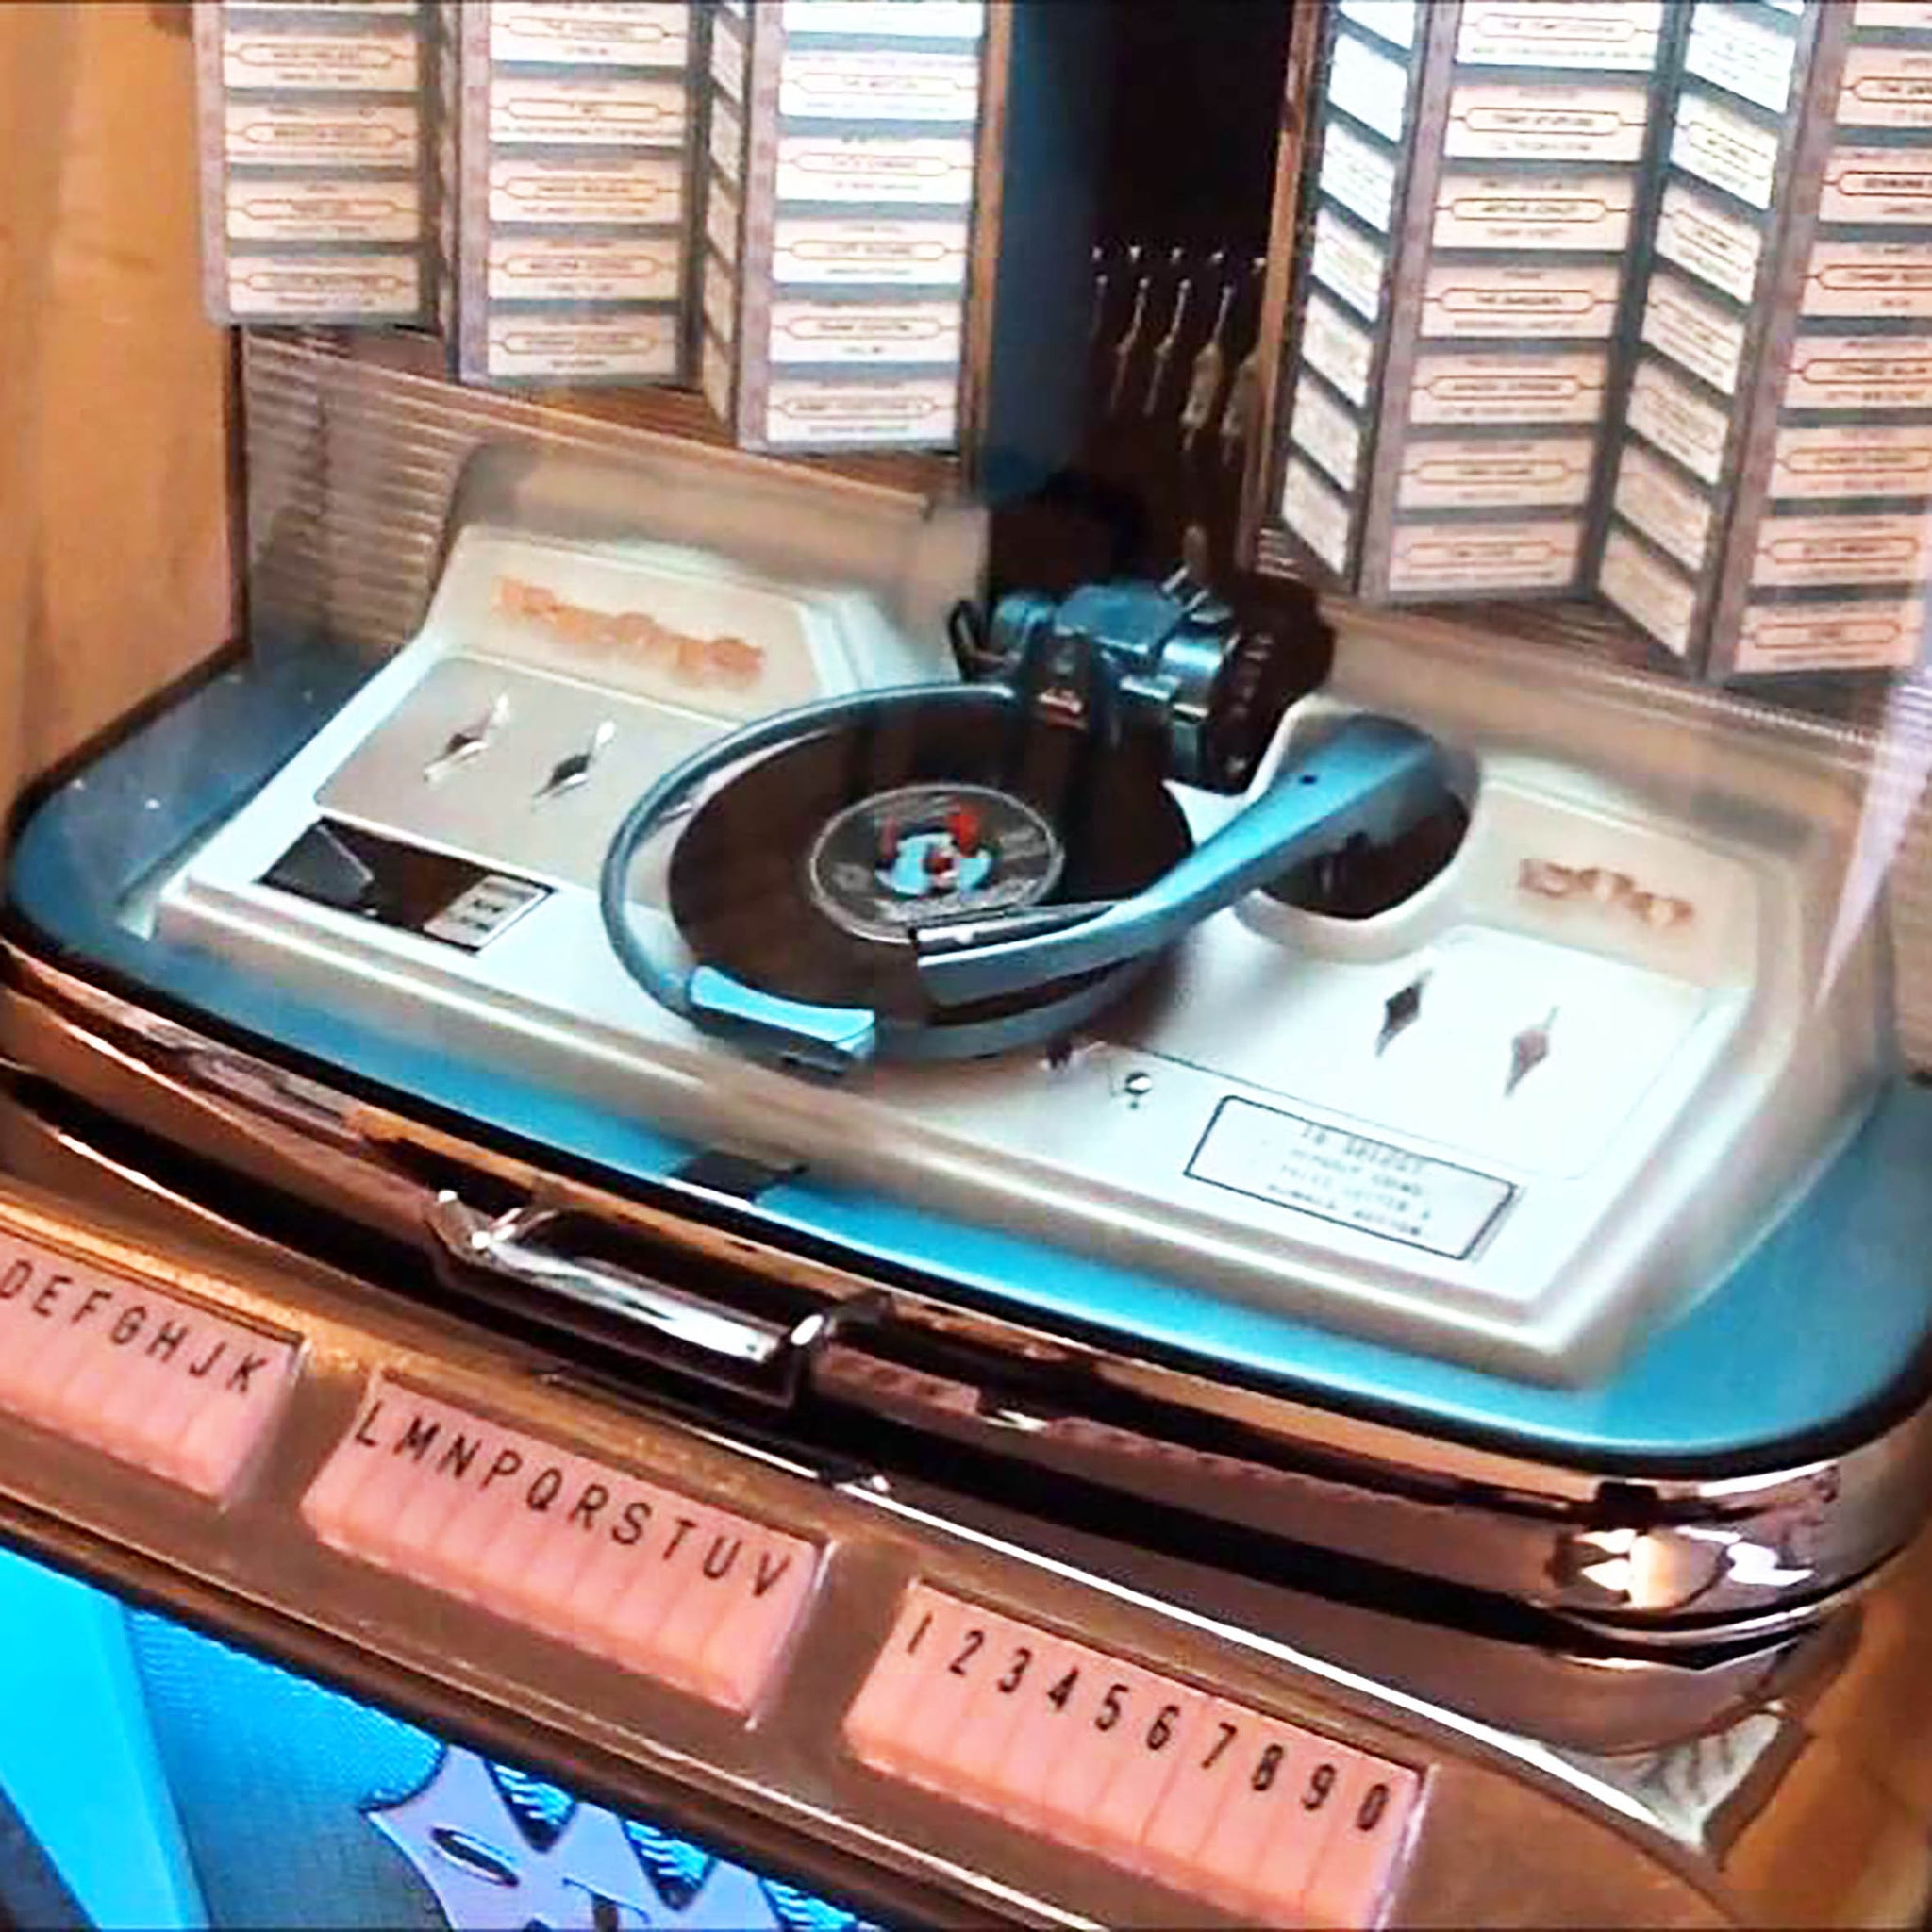 Original 1961 Rock-Ola Regis 1495 Jukebox